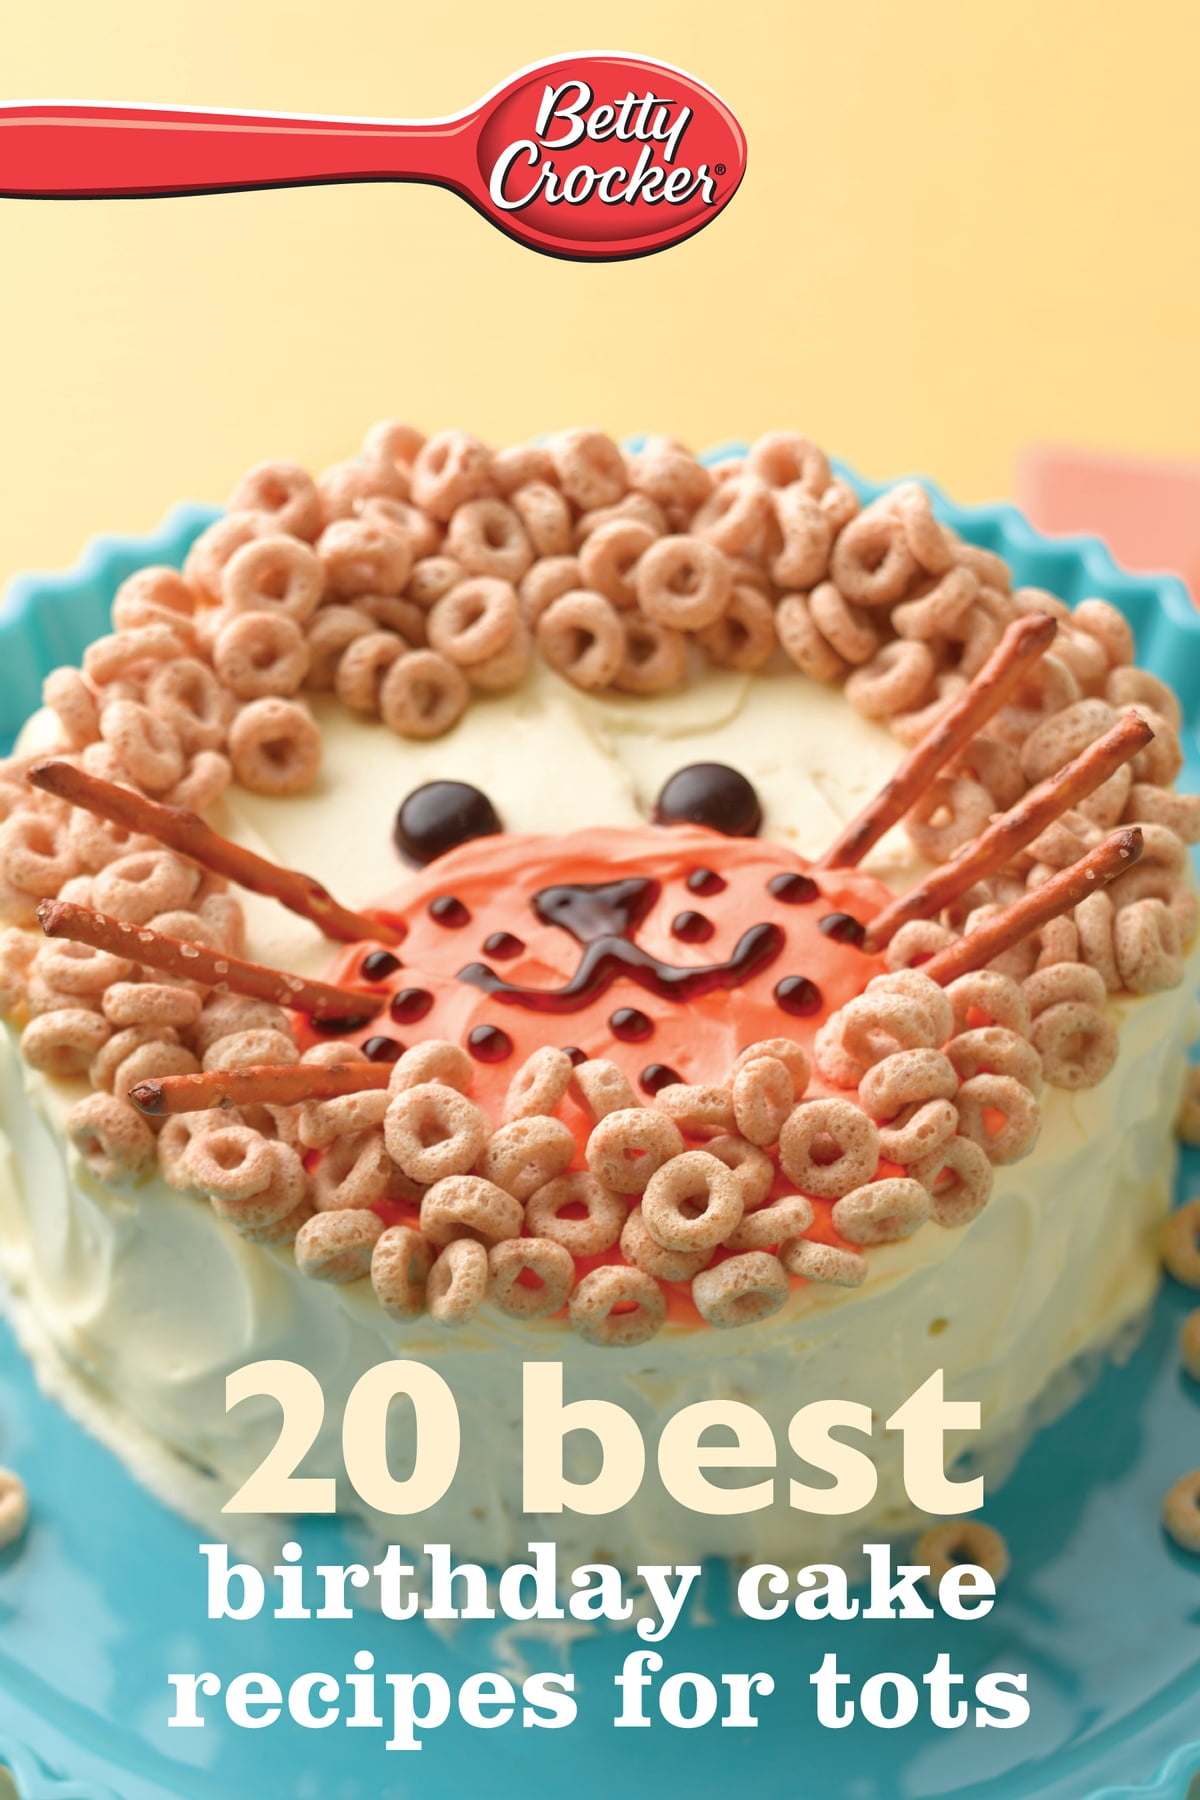 Strange Betty Crocker 20 Best Birthday Cakes Recipes For Tots Ebook By Personalised Birthday Cards Veneteletsinfo